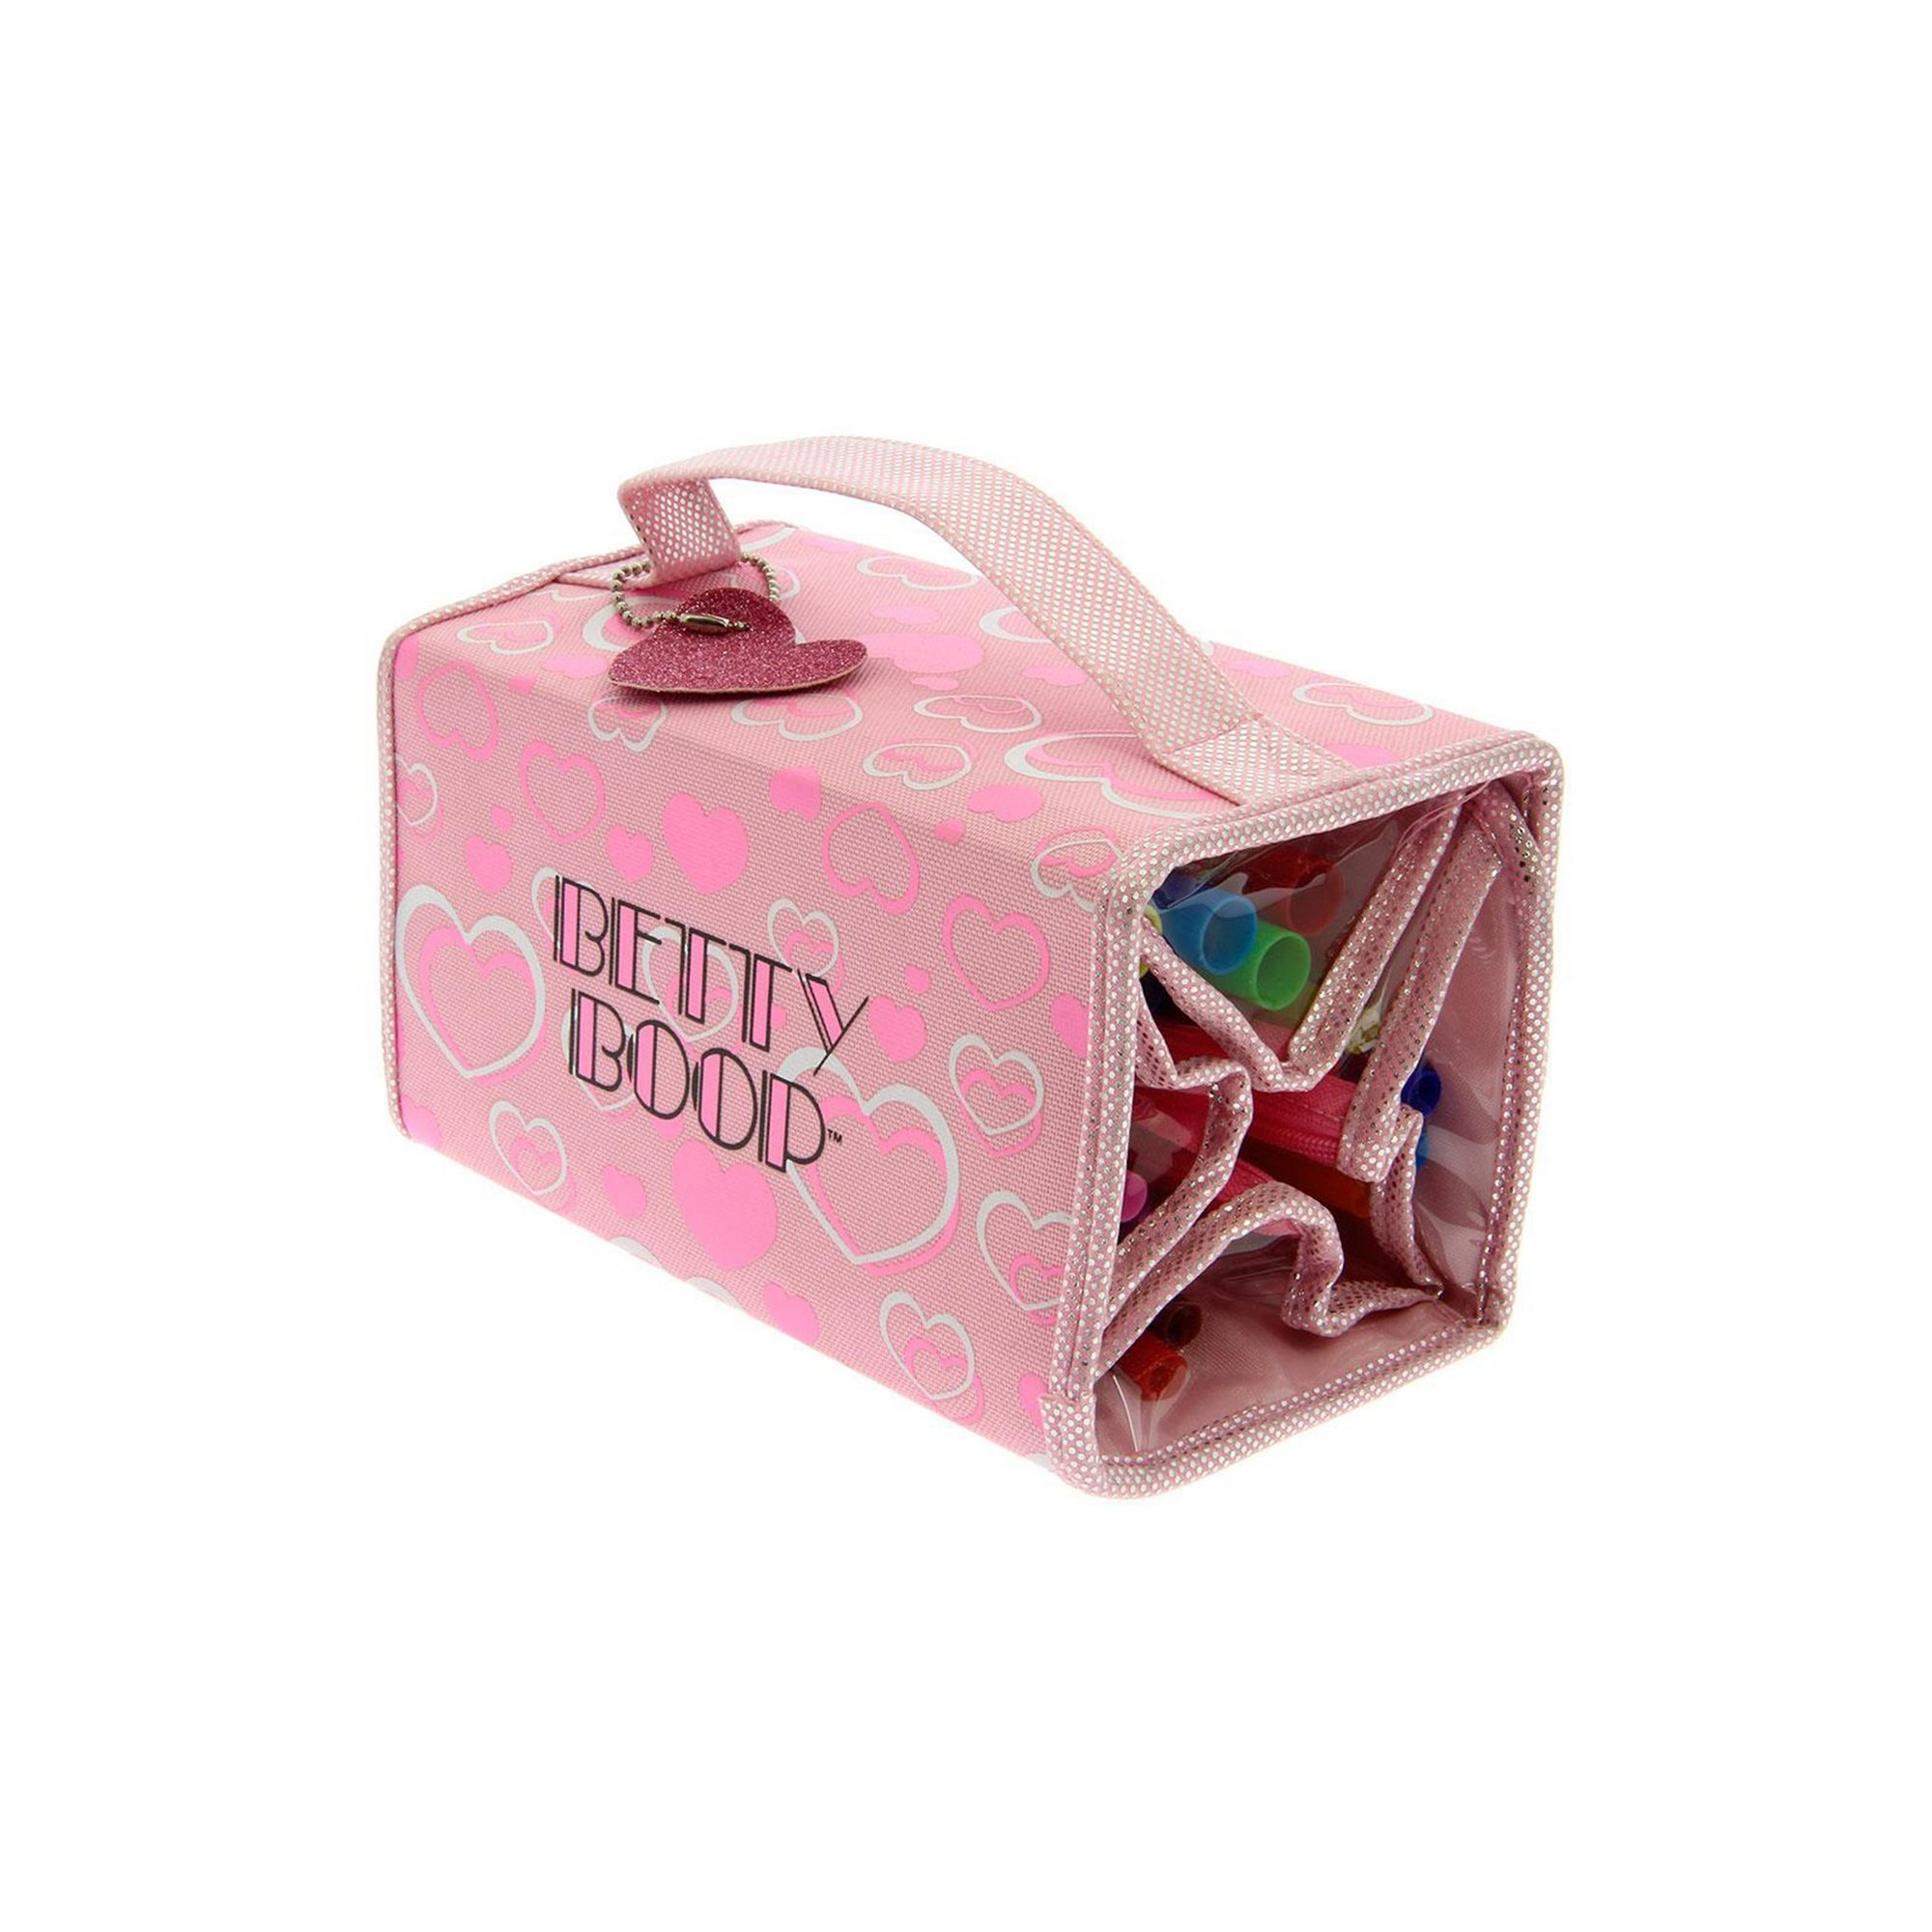 Image of Betty Boop Cosmetic Wrap Case